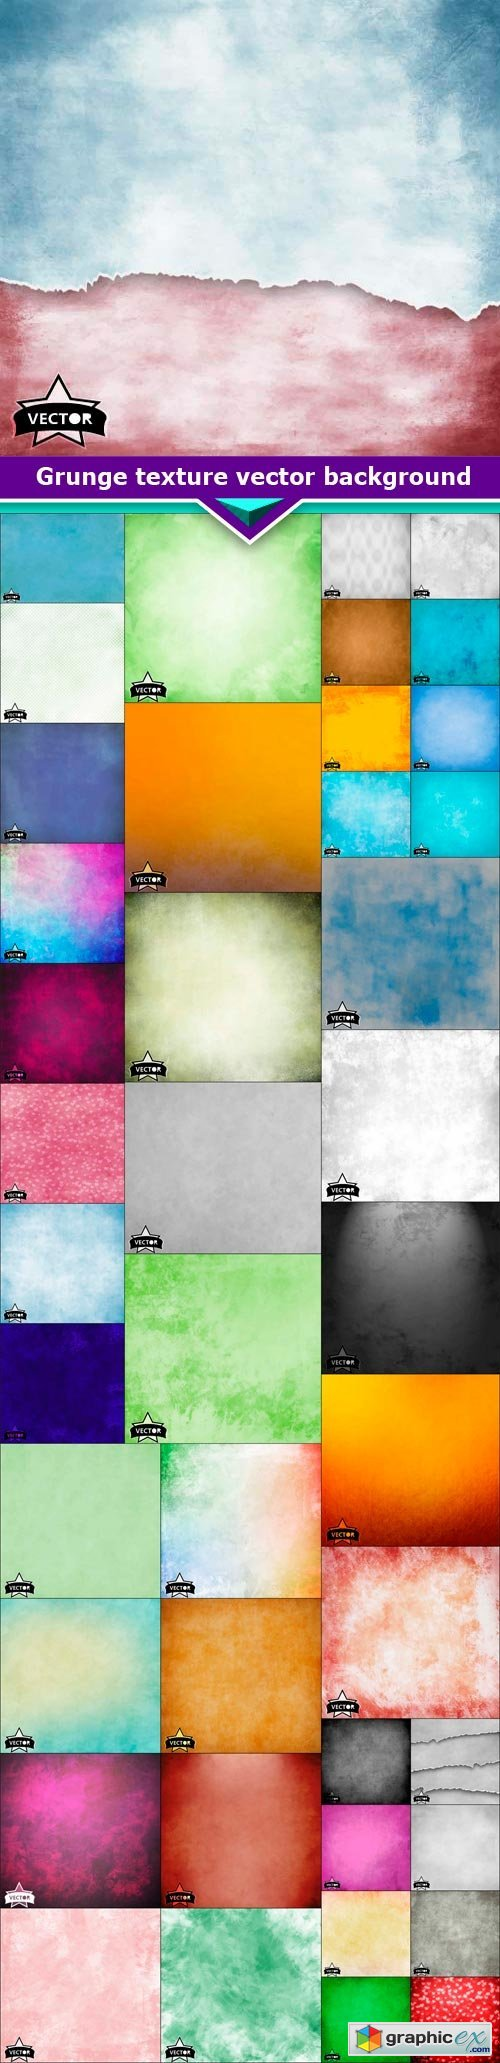 Grunge texture vector background 43x EPS